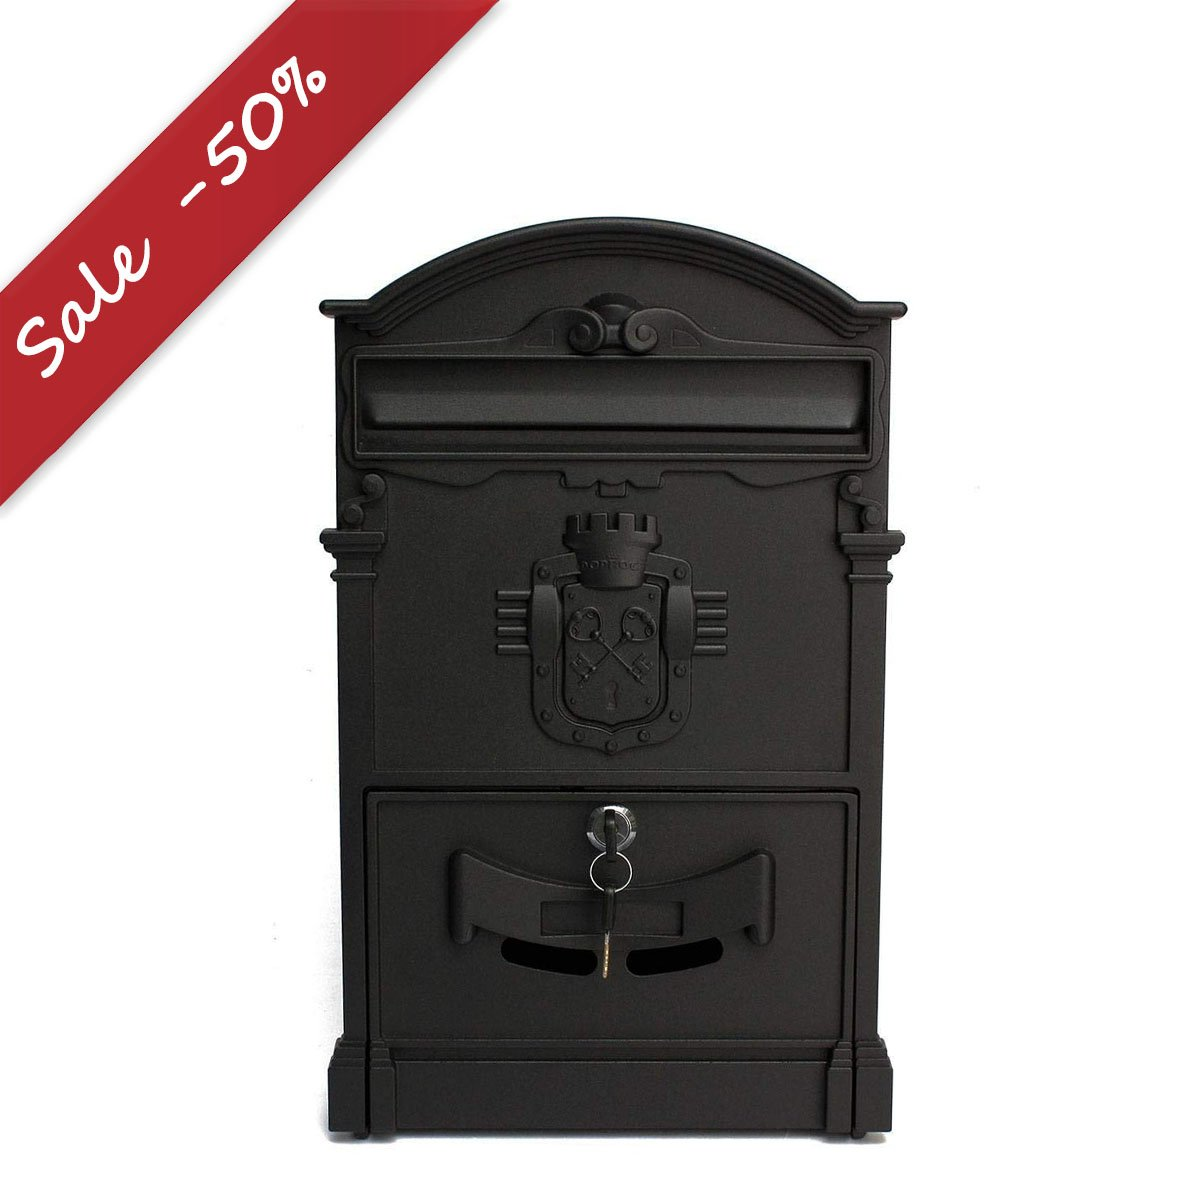 KINGSO Retro Outside Wall Mount Post Mailbox Lockable Secure Letterbox 41x25x8cm Black